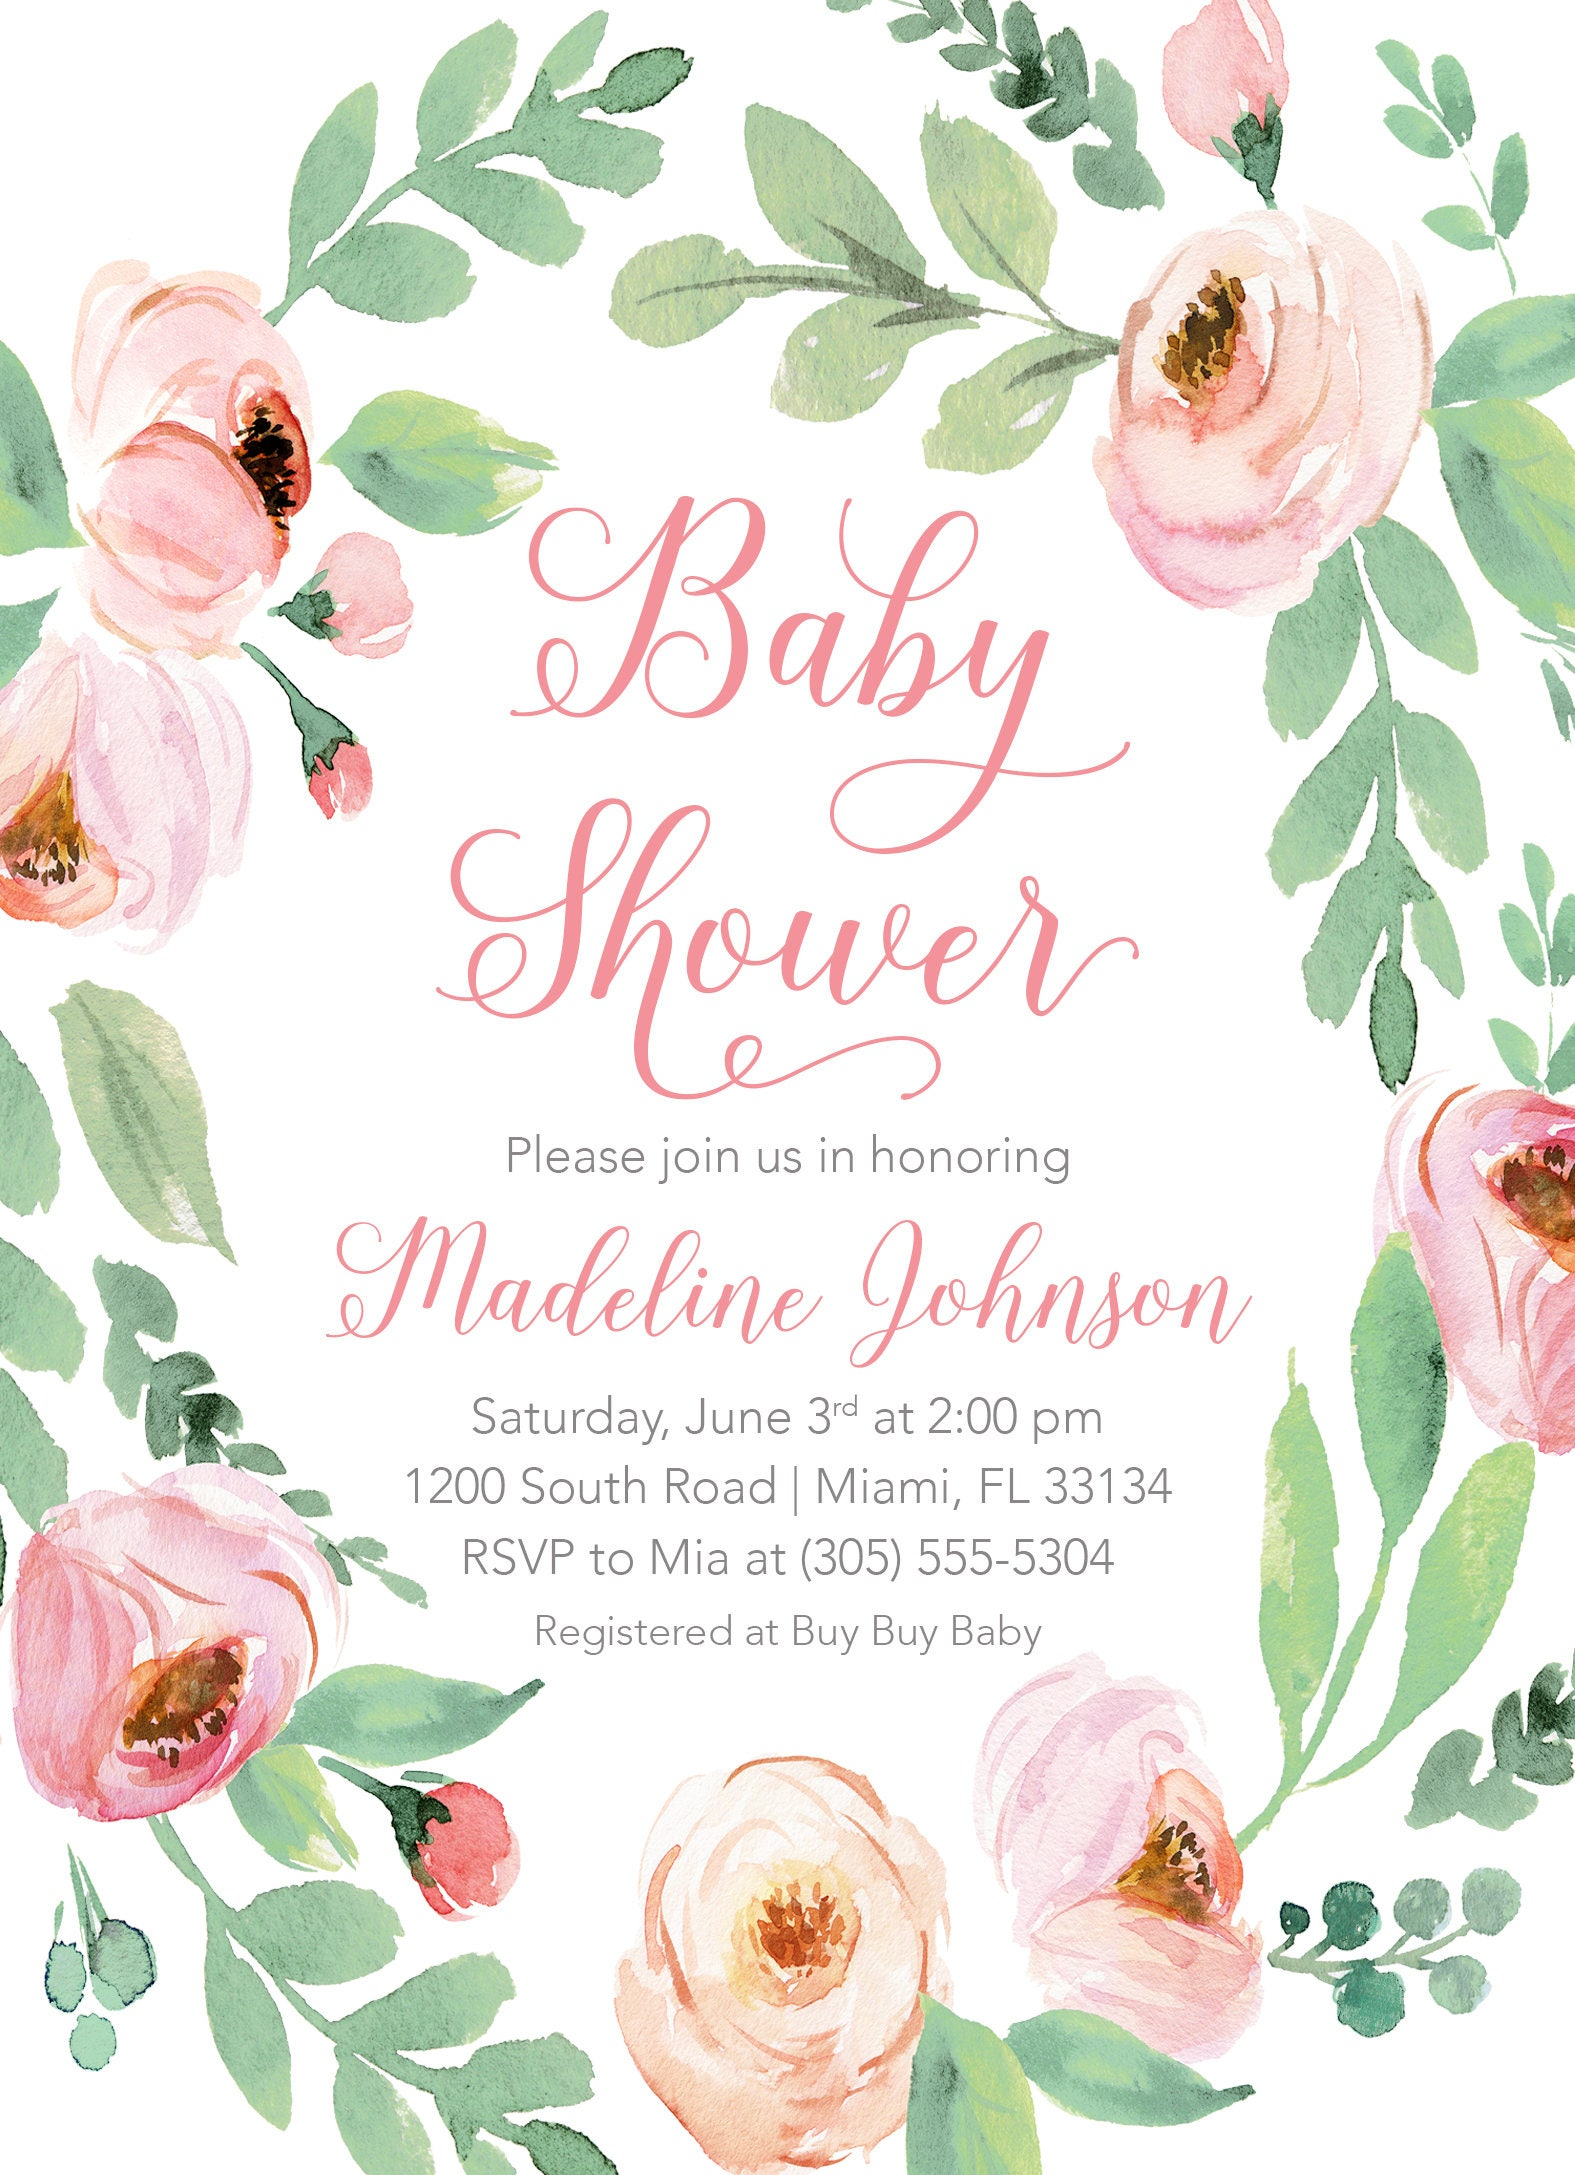 Baby shower invitation pink floral baby shower invitation garden baby shower invitation pink floral baby shower invitation garden baby shower invite rustic baby shower girl baby shower invitation filmwisefo